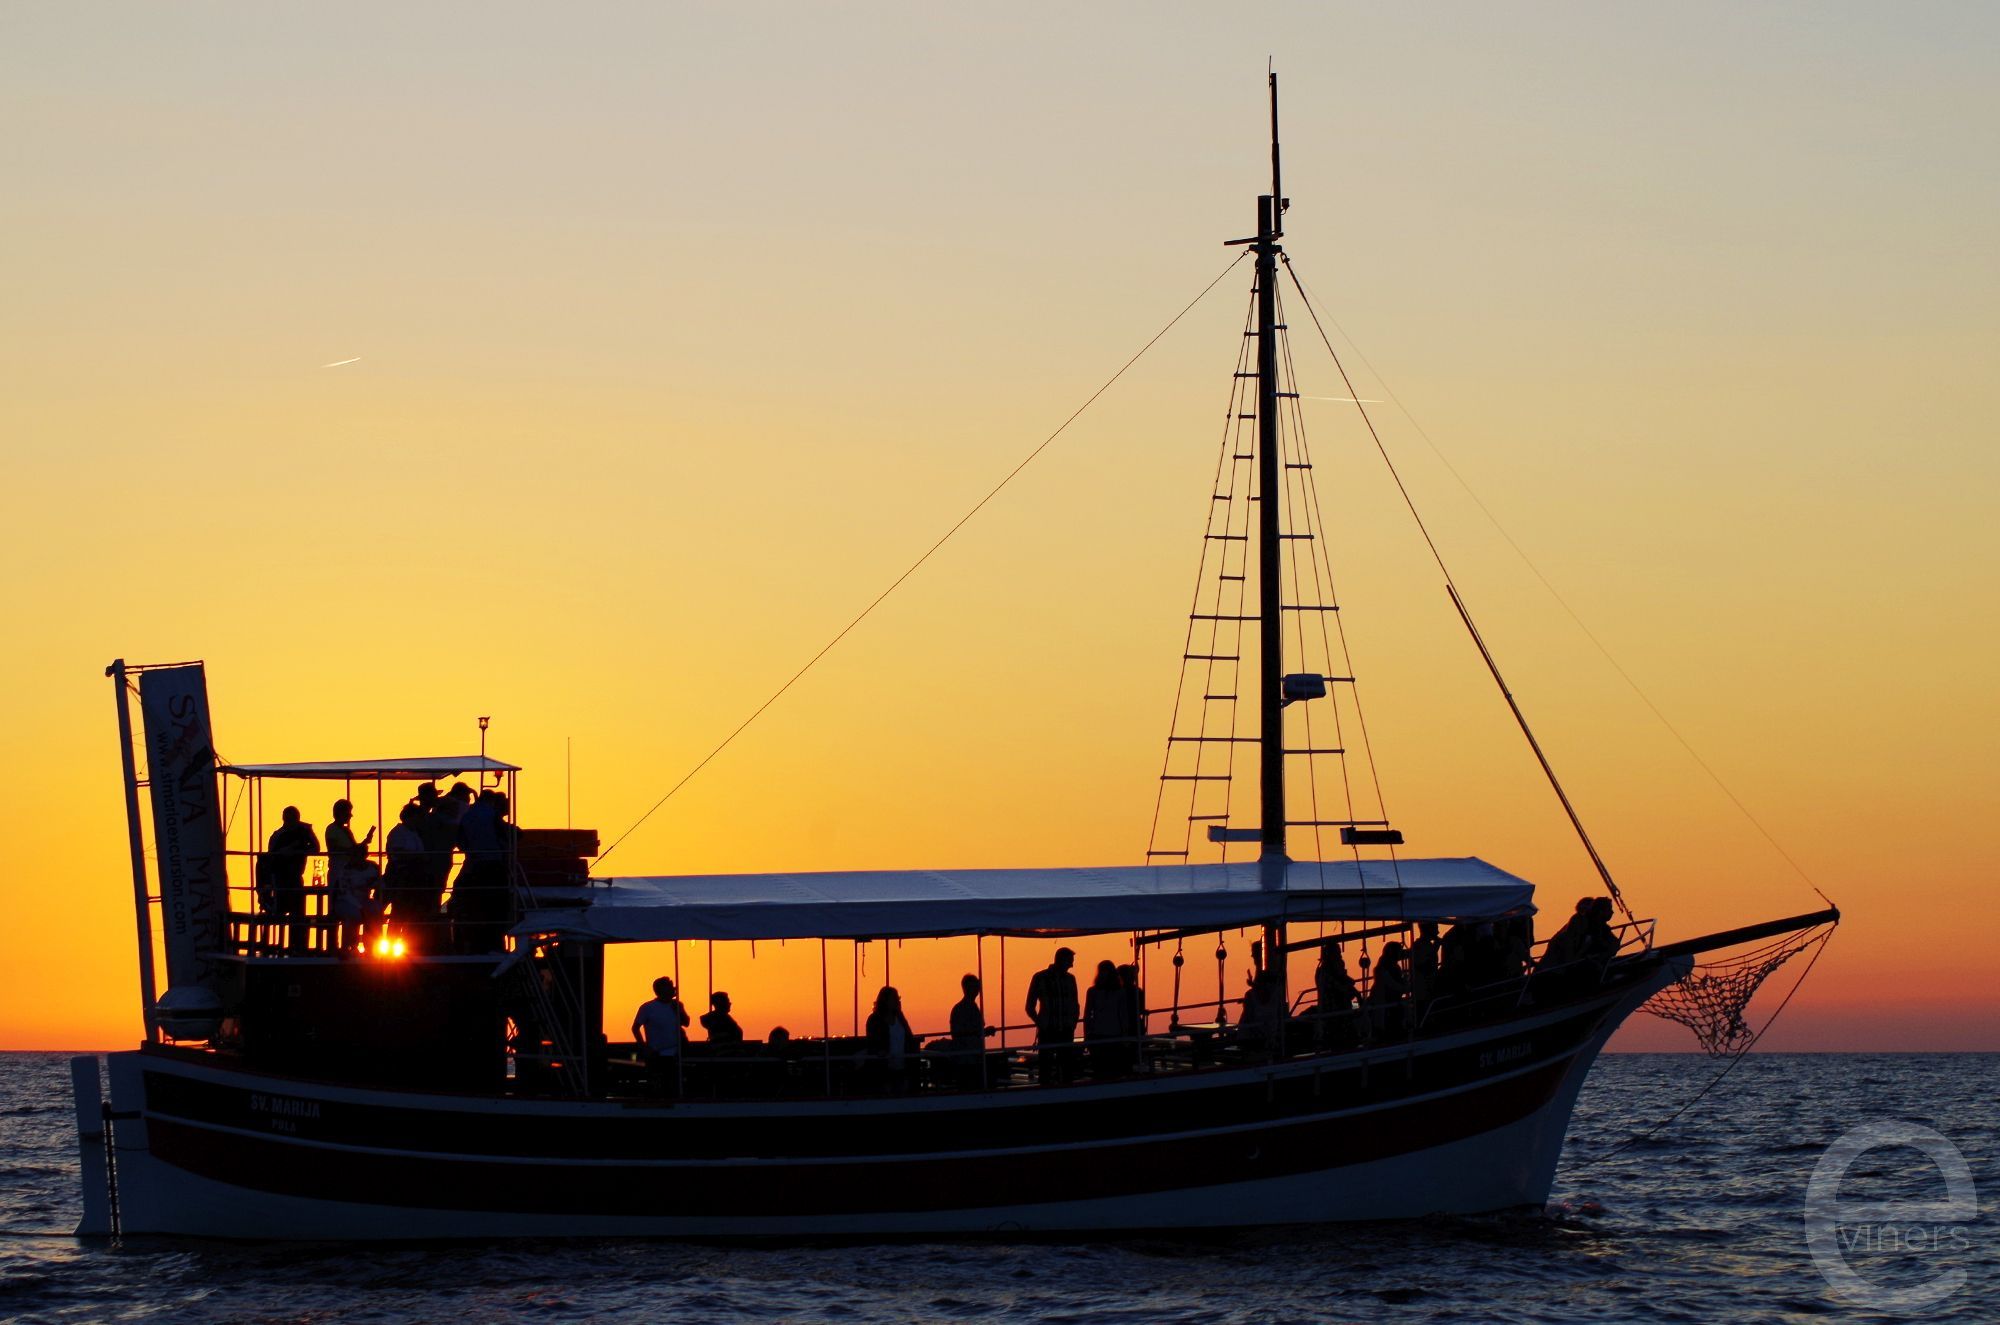 Boat in Front of the Setting Sun